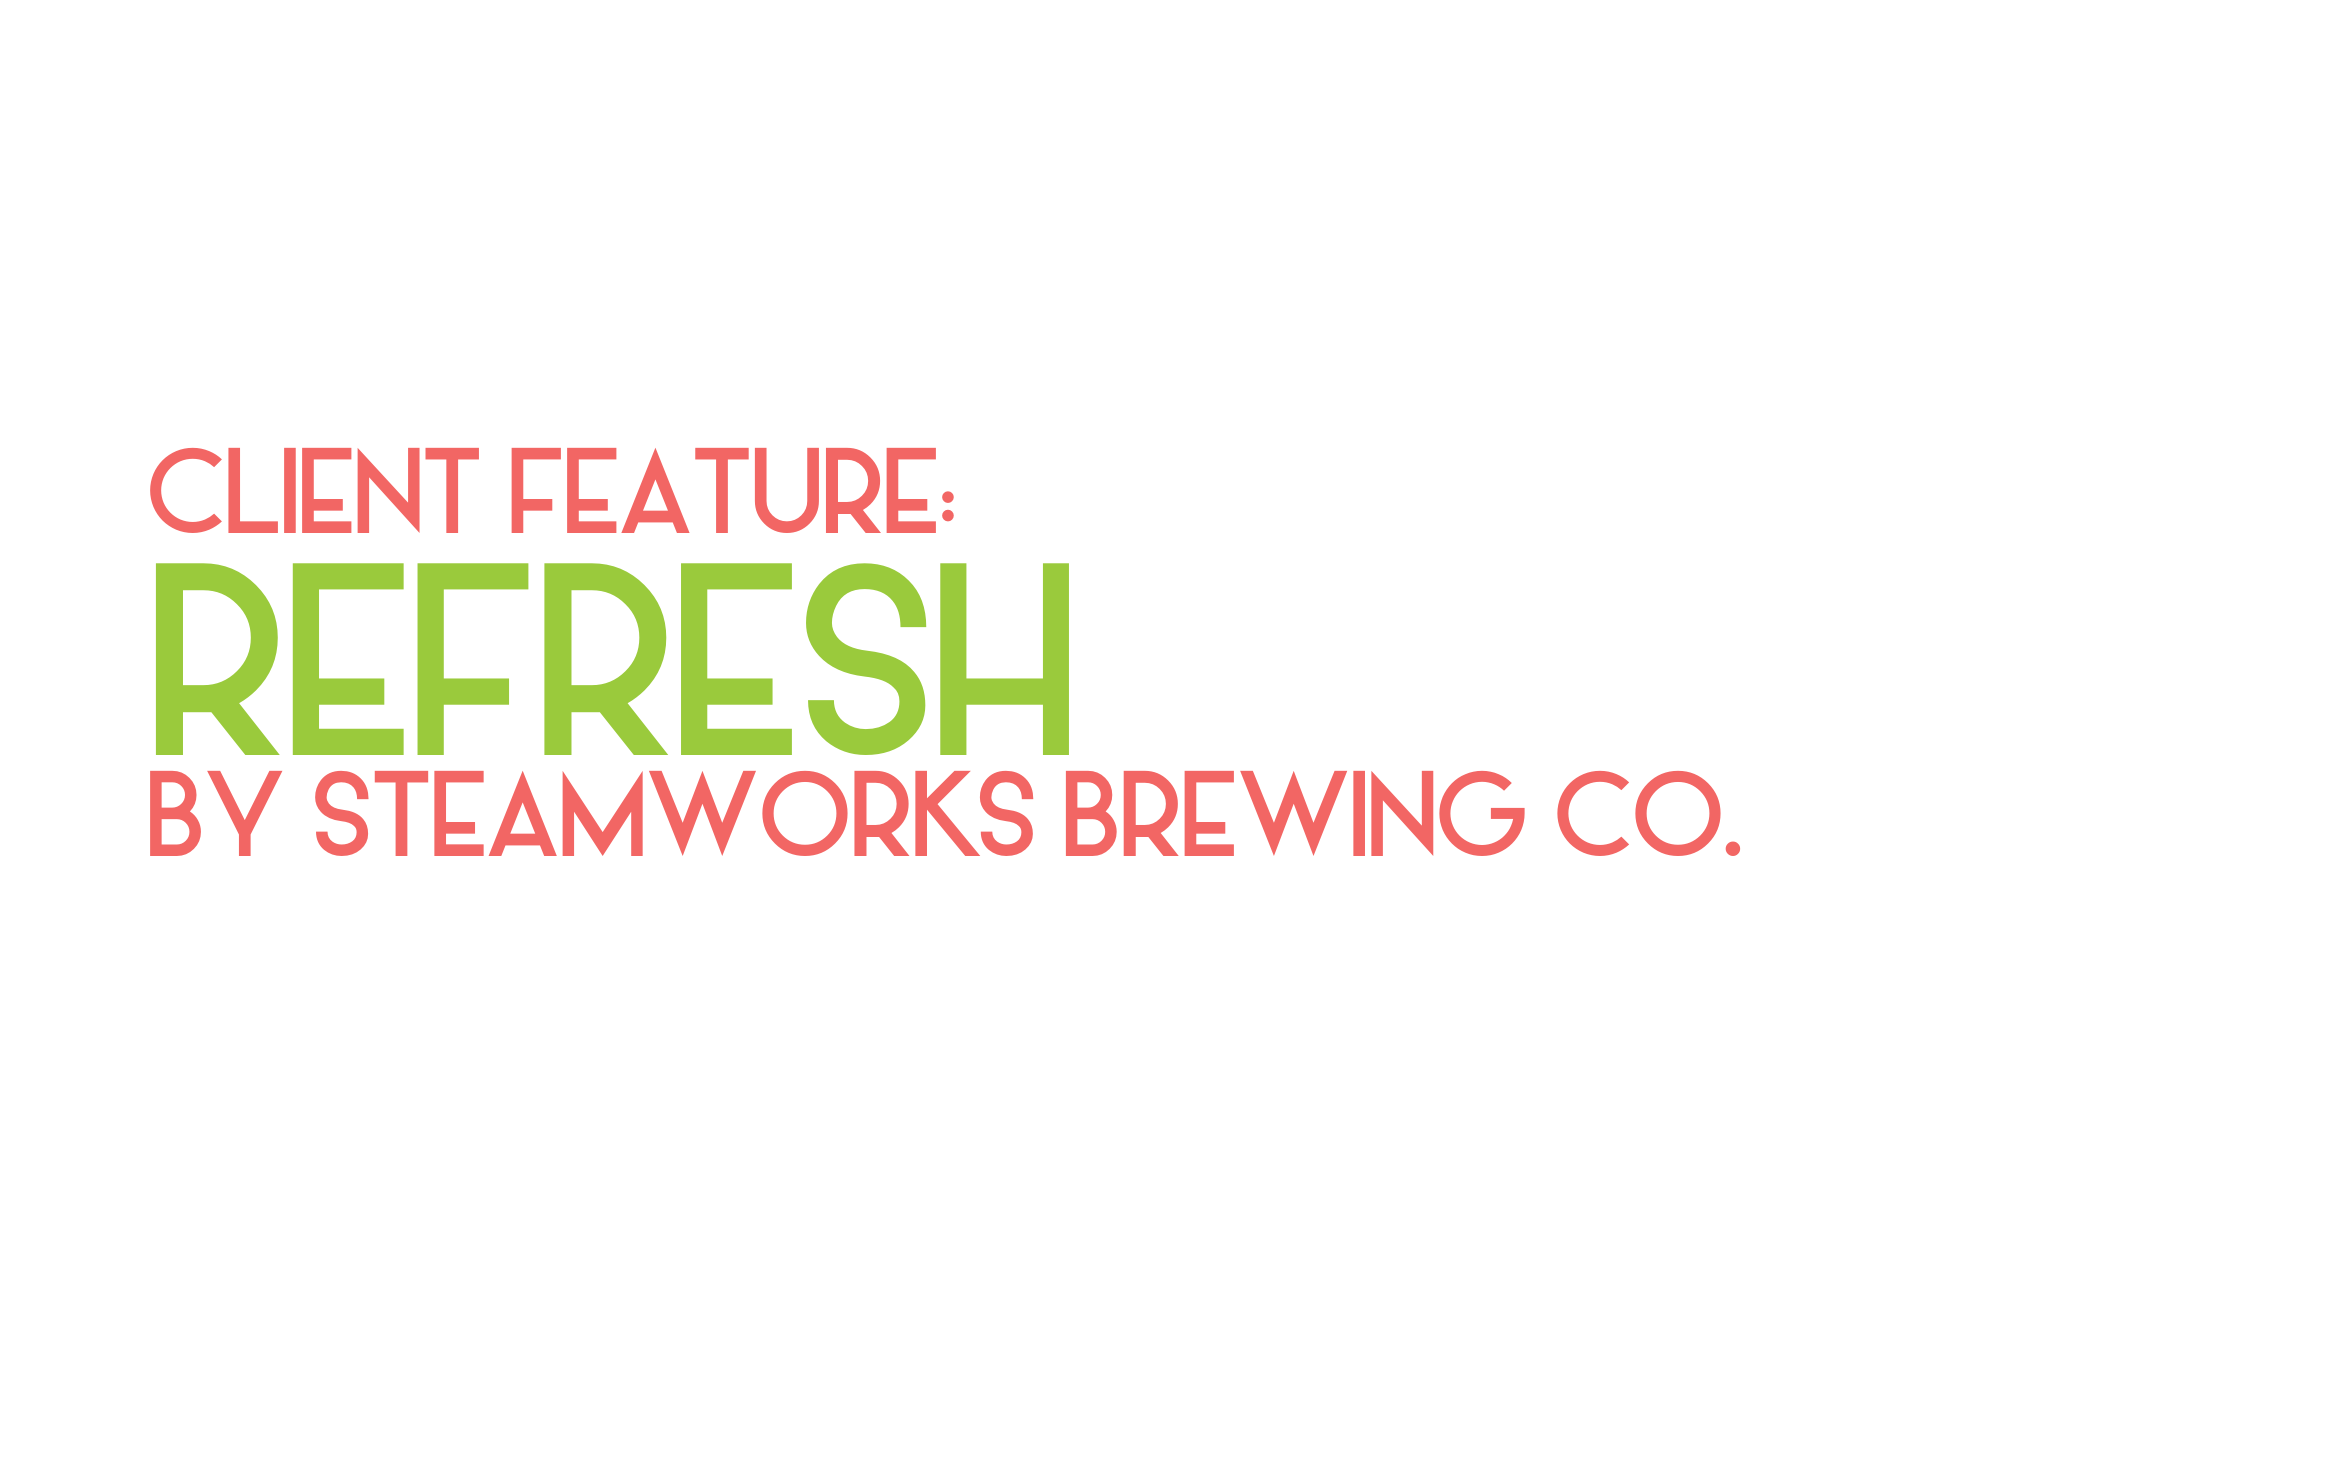 Client Feature: Refresh by Steamworks Brewing co